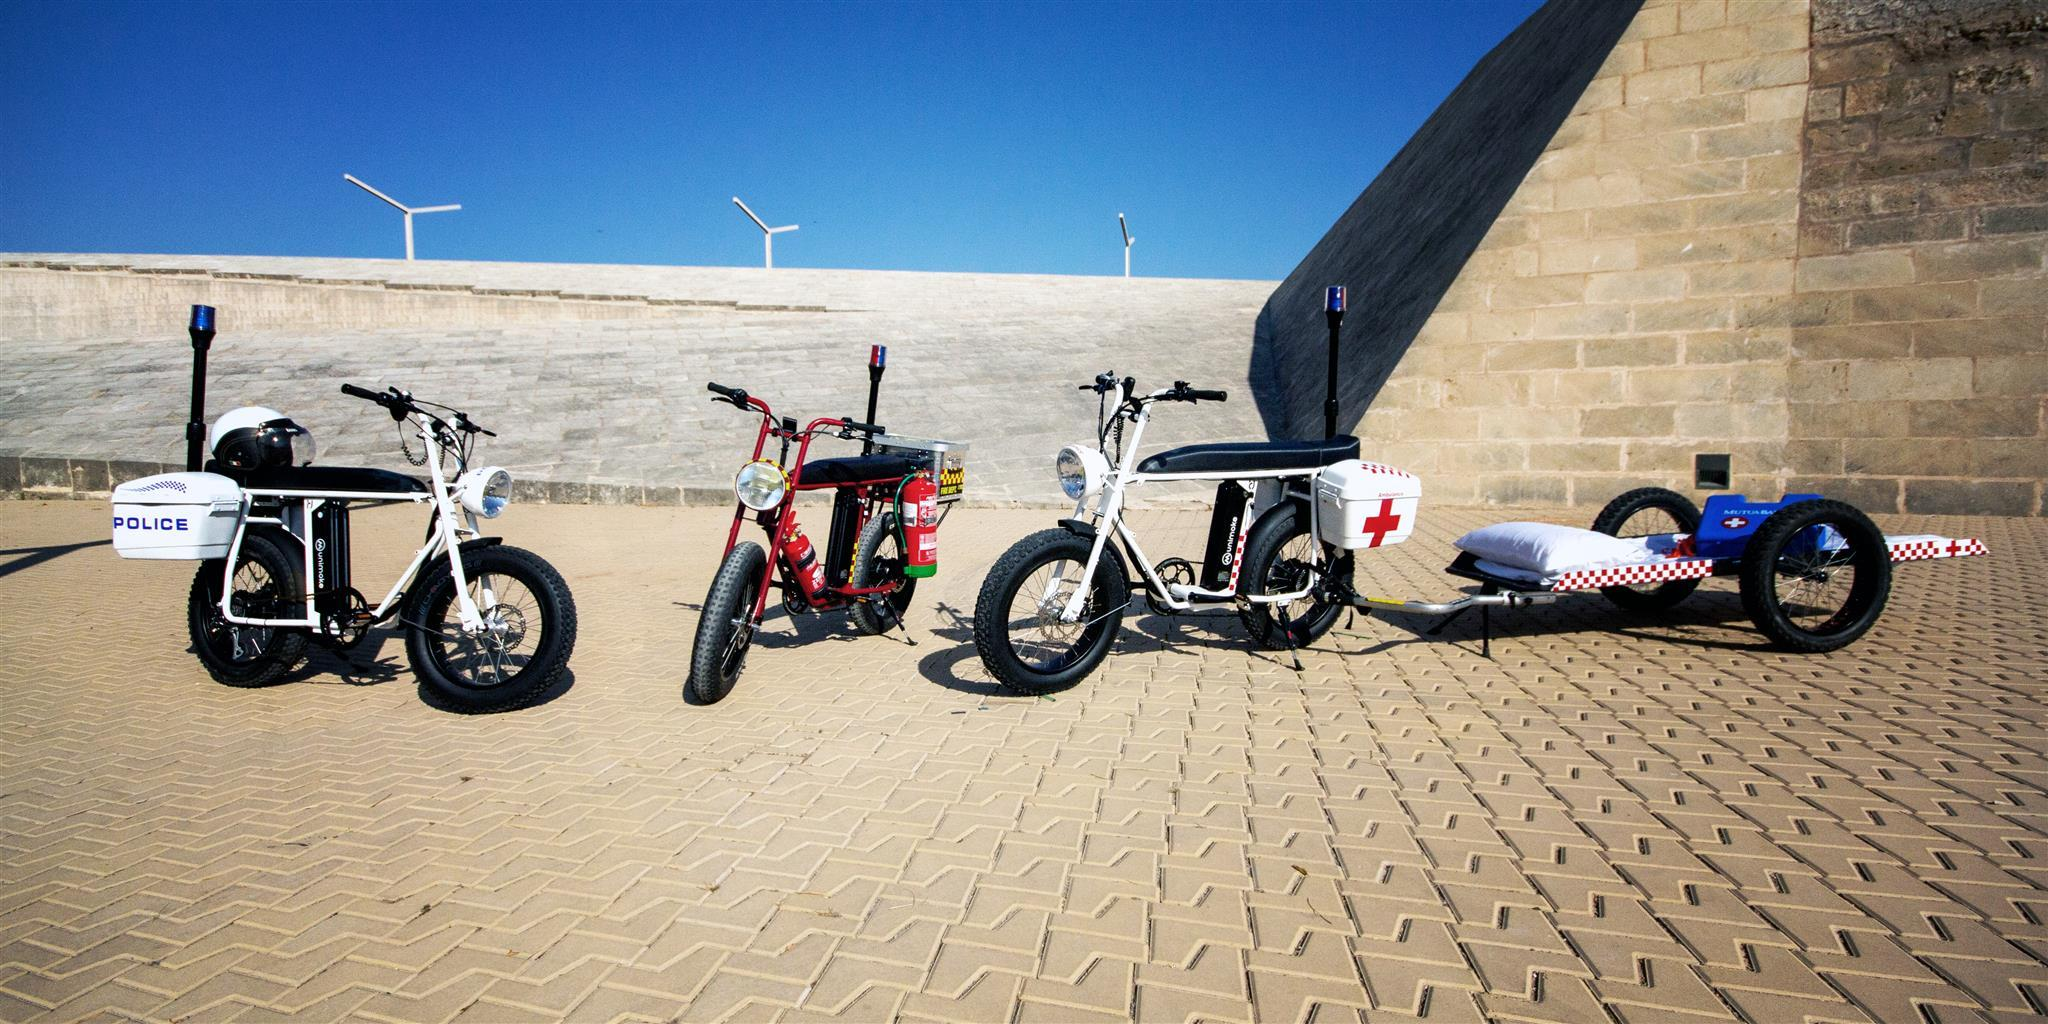 Uni Moke: The perfect utility electric bike for government and public services